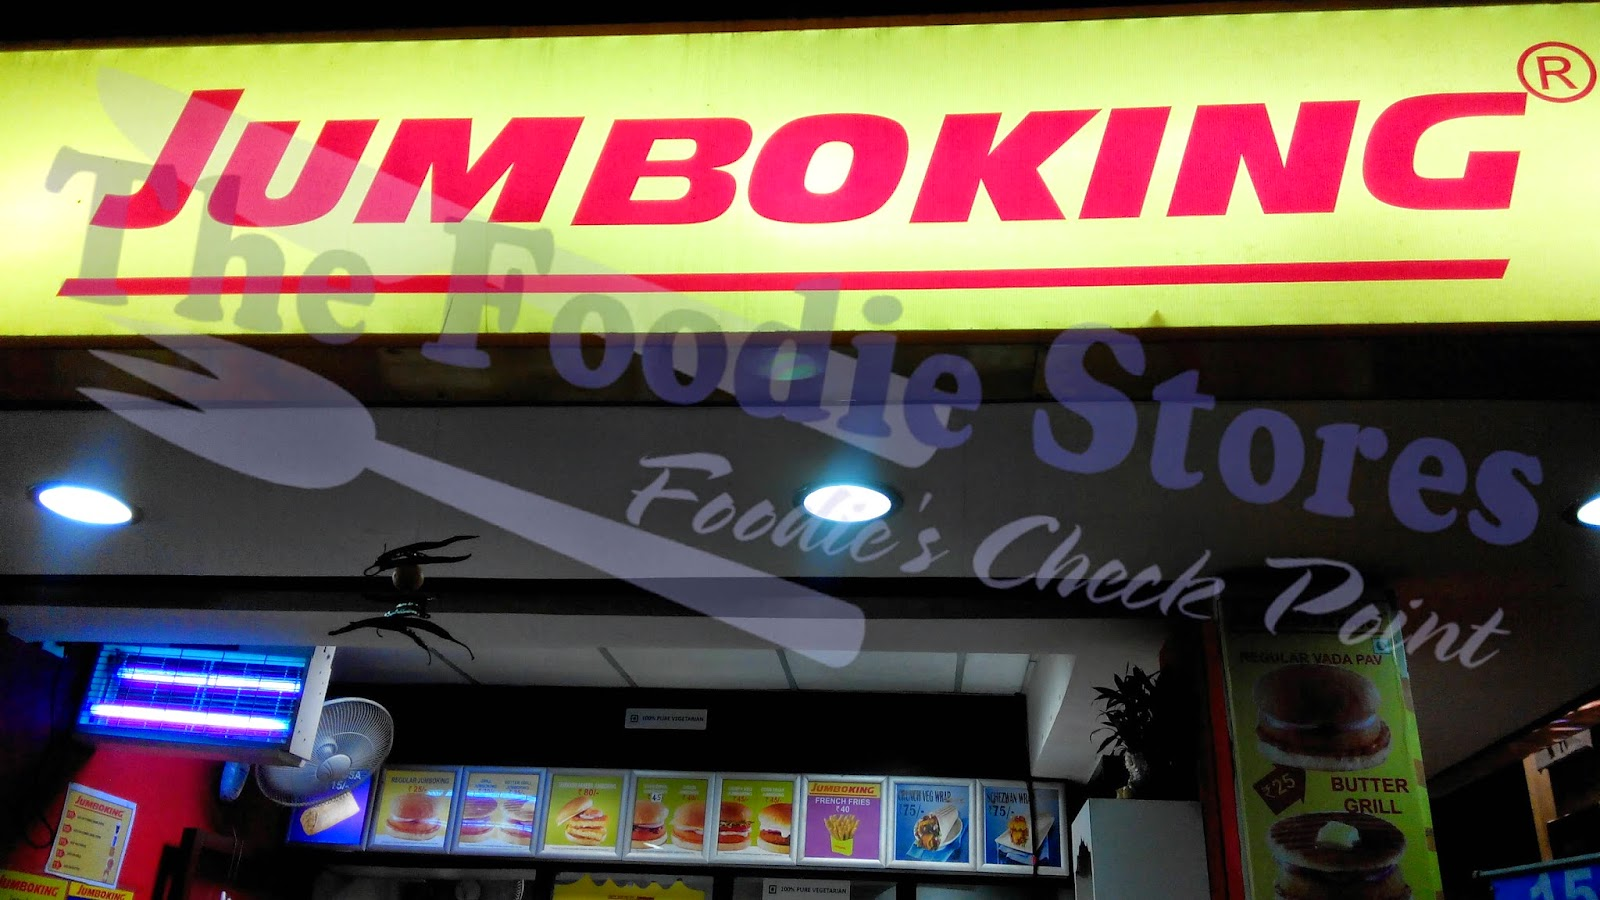 Jumboking Vadapav Outlet